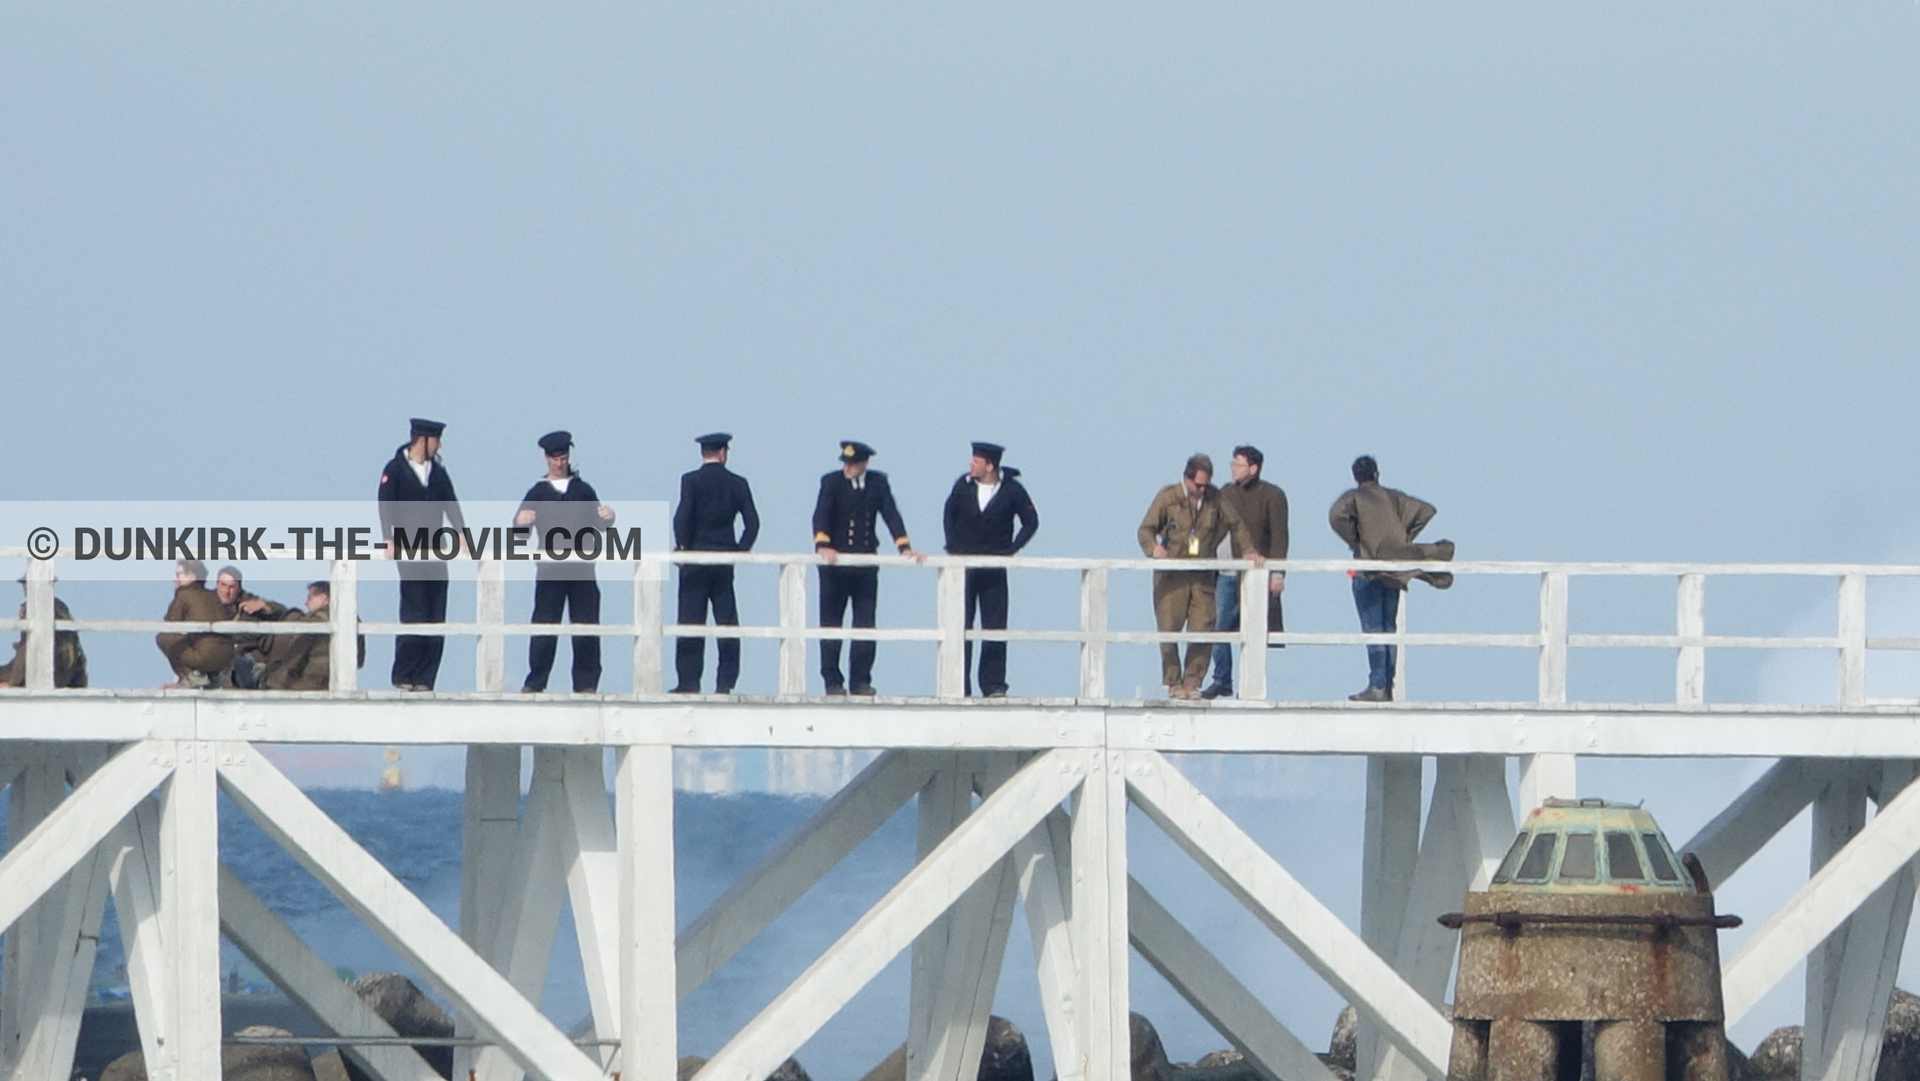 Picture with blue sky, supernumeraries, white smoke, EST pier, technical team,  from behind the scene of the Dunkirk movie by Nolan